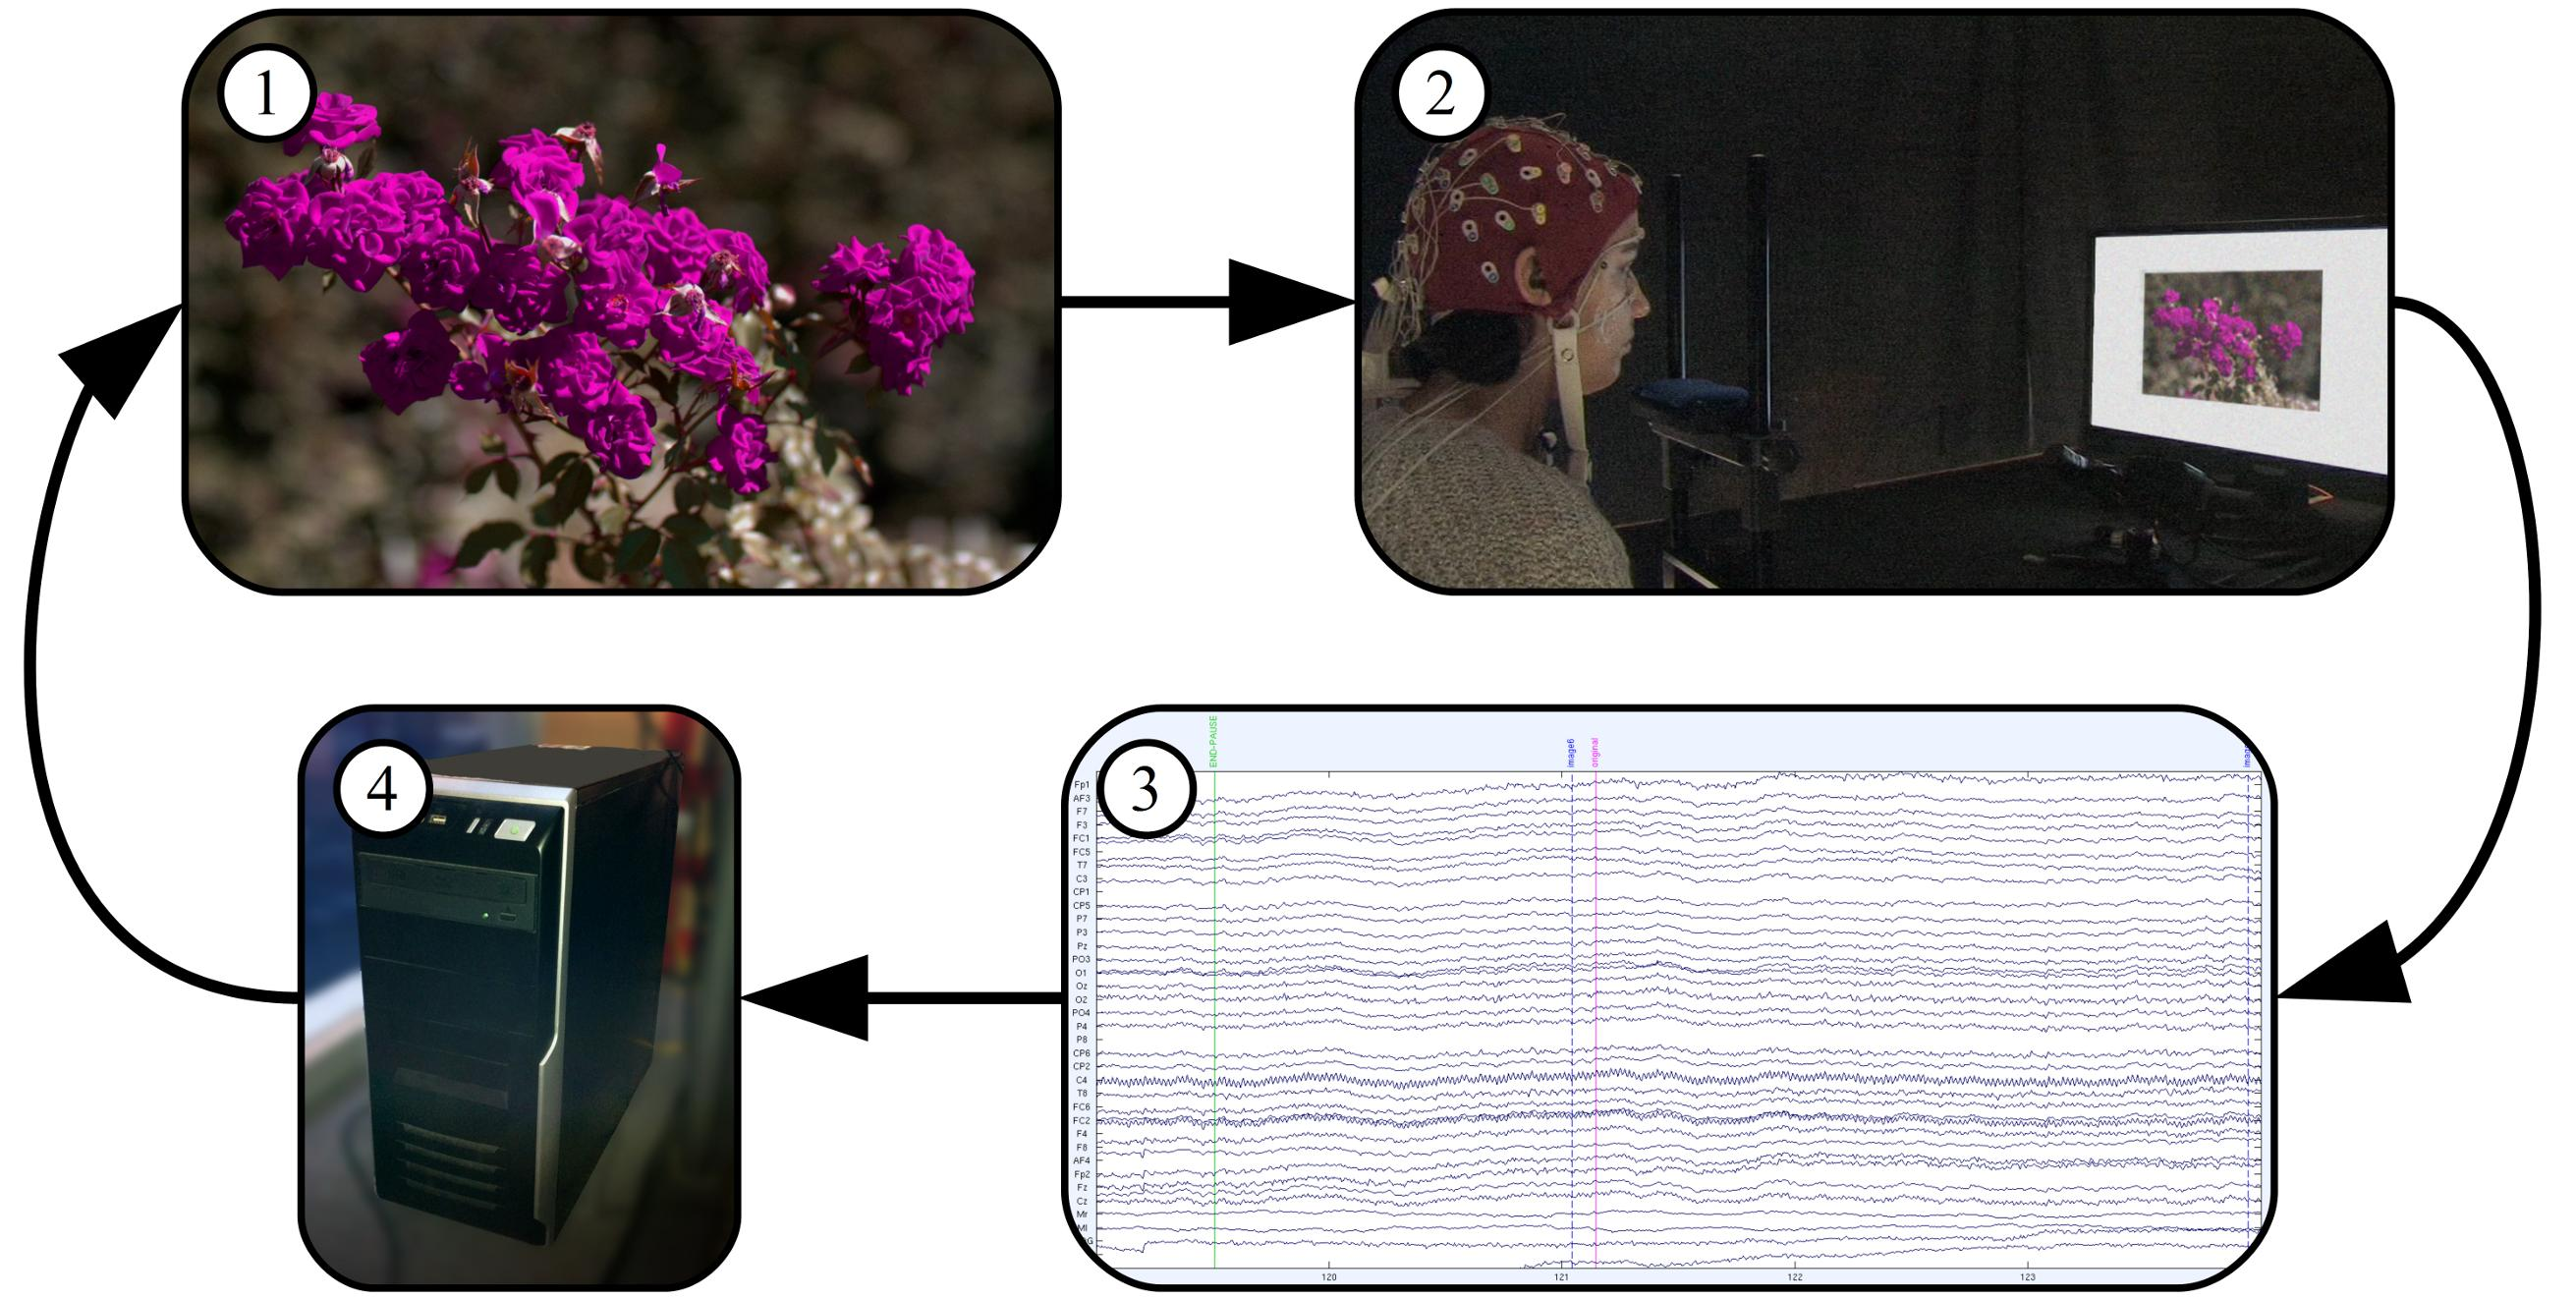 ElectroEncephaloGraphics: Making Waves in Computer Graphics Research